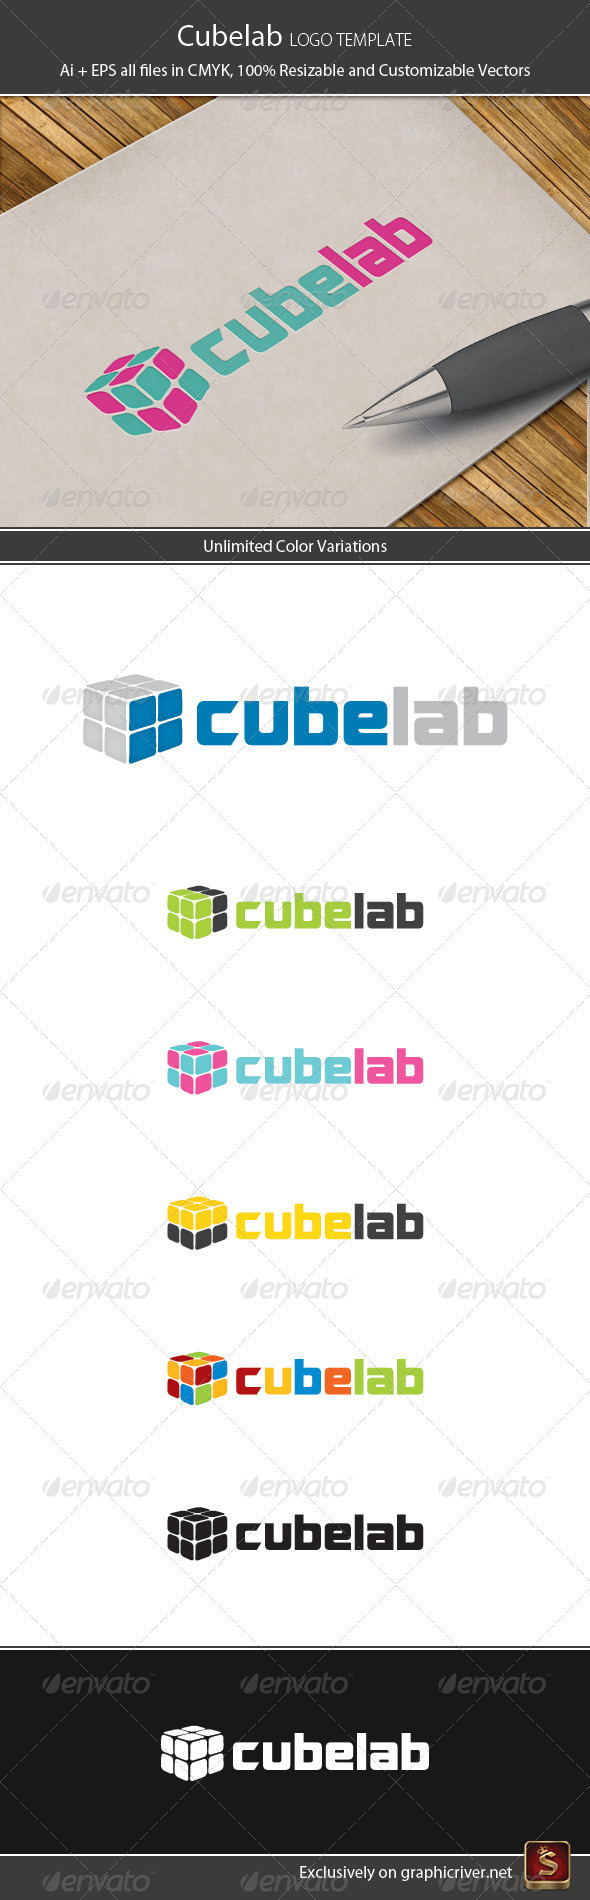 GraphicRiver Cube Lab Logo Template 2732192